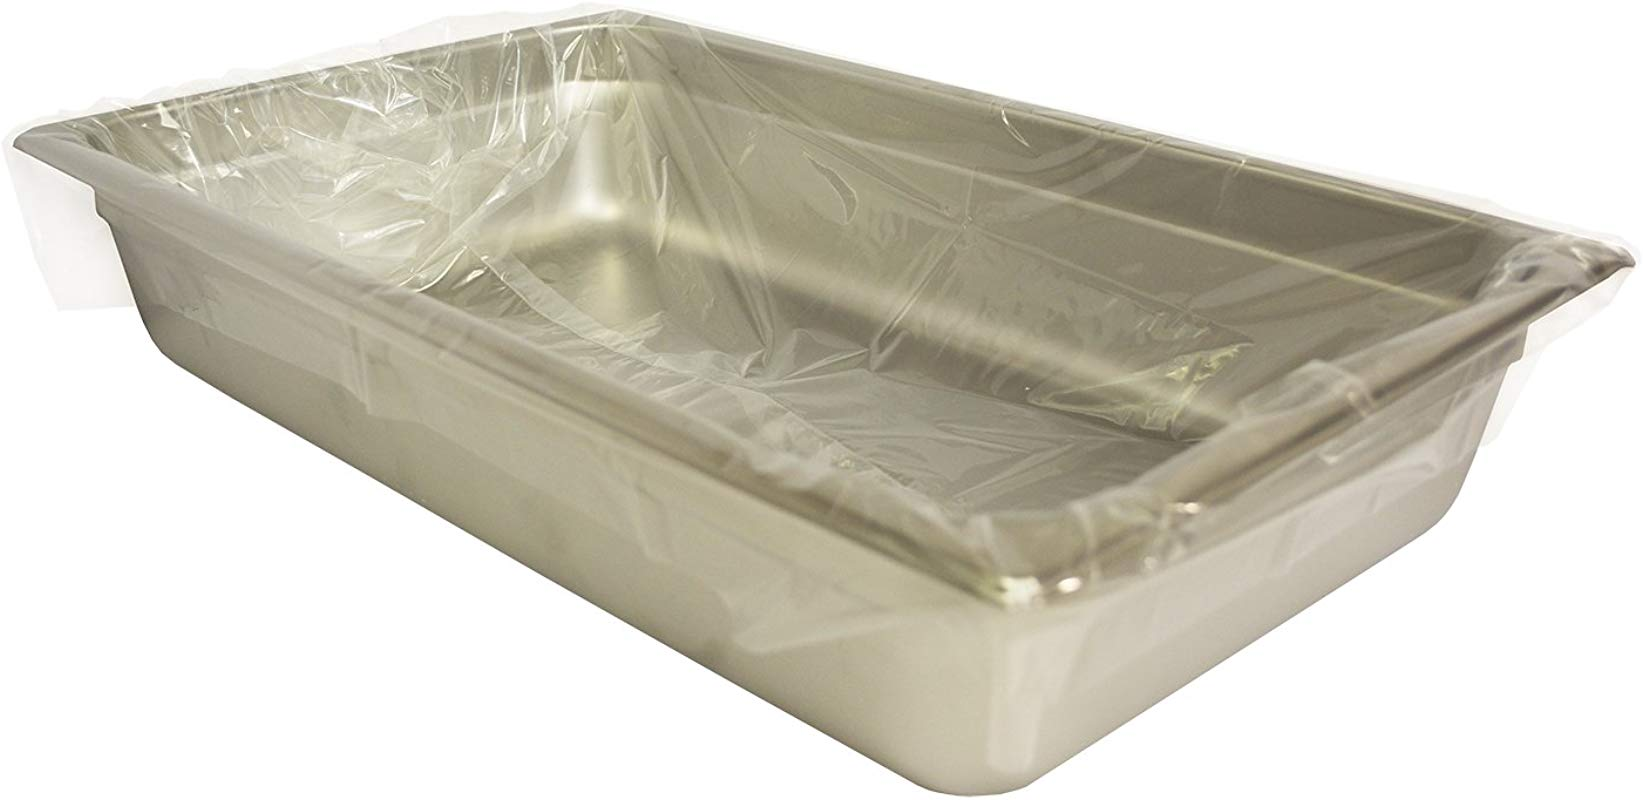 Royal Shallow Full Pan High Heat Oven Pan Liner 34 Inch W X 12 Inch L Case Of 100